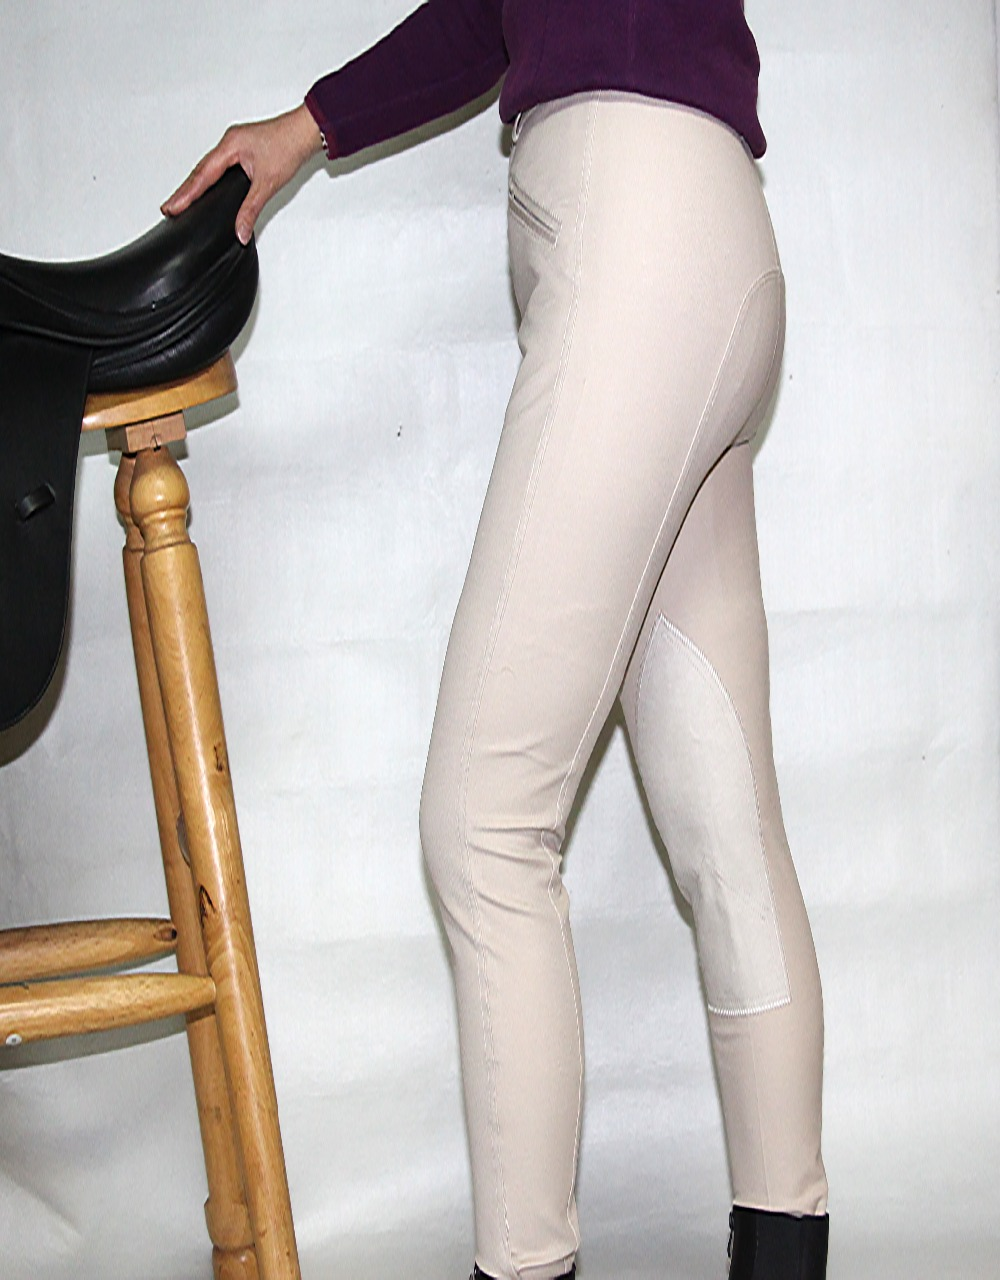 Aoud Horse Riding Pants Breeches Soft Breathable Equestrian Chaps Unisex Halters Saddle Paardensport Horse Riding Equipment